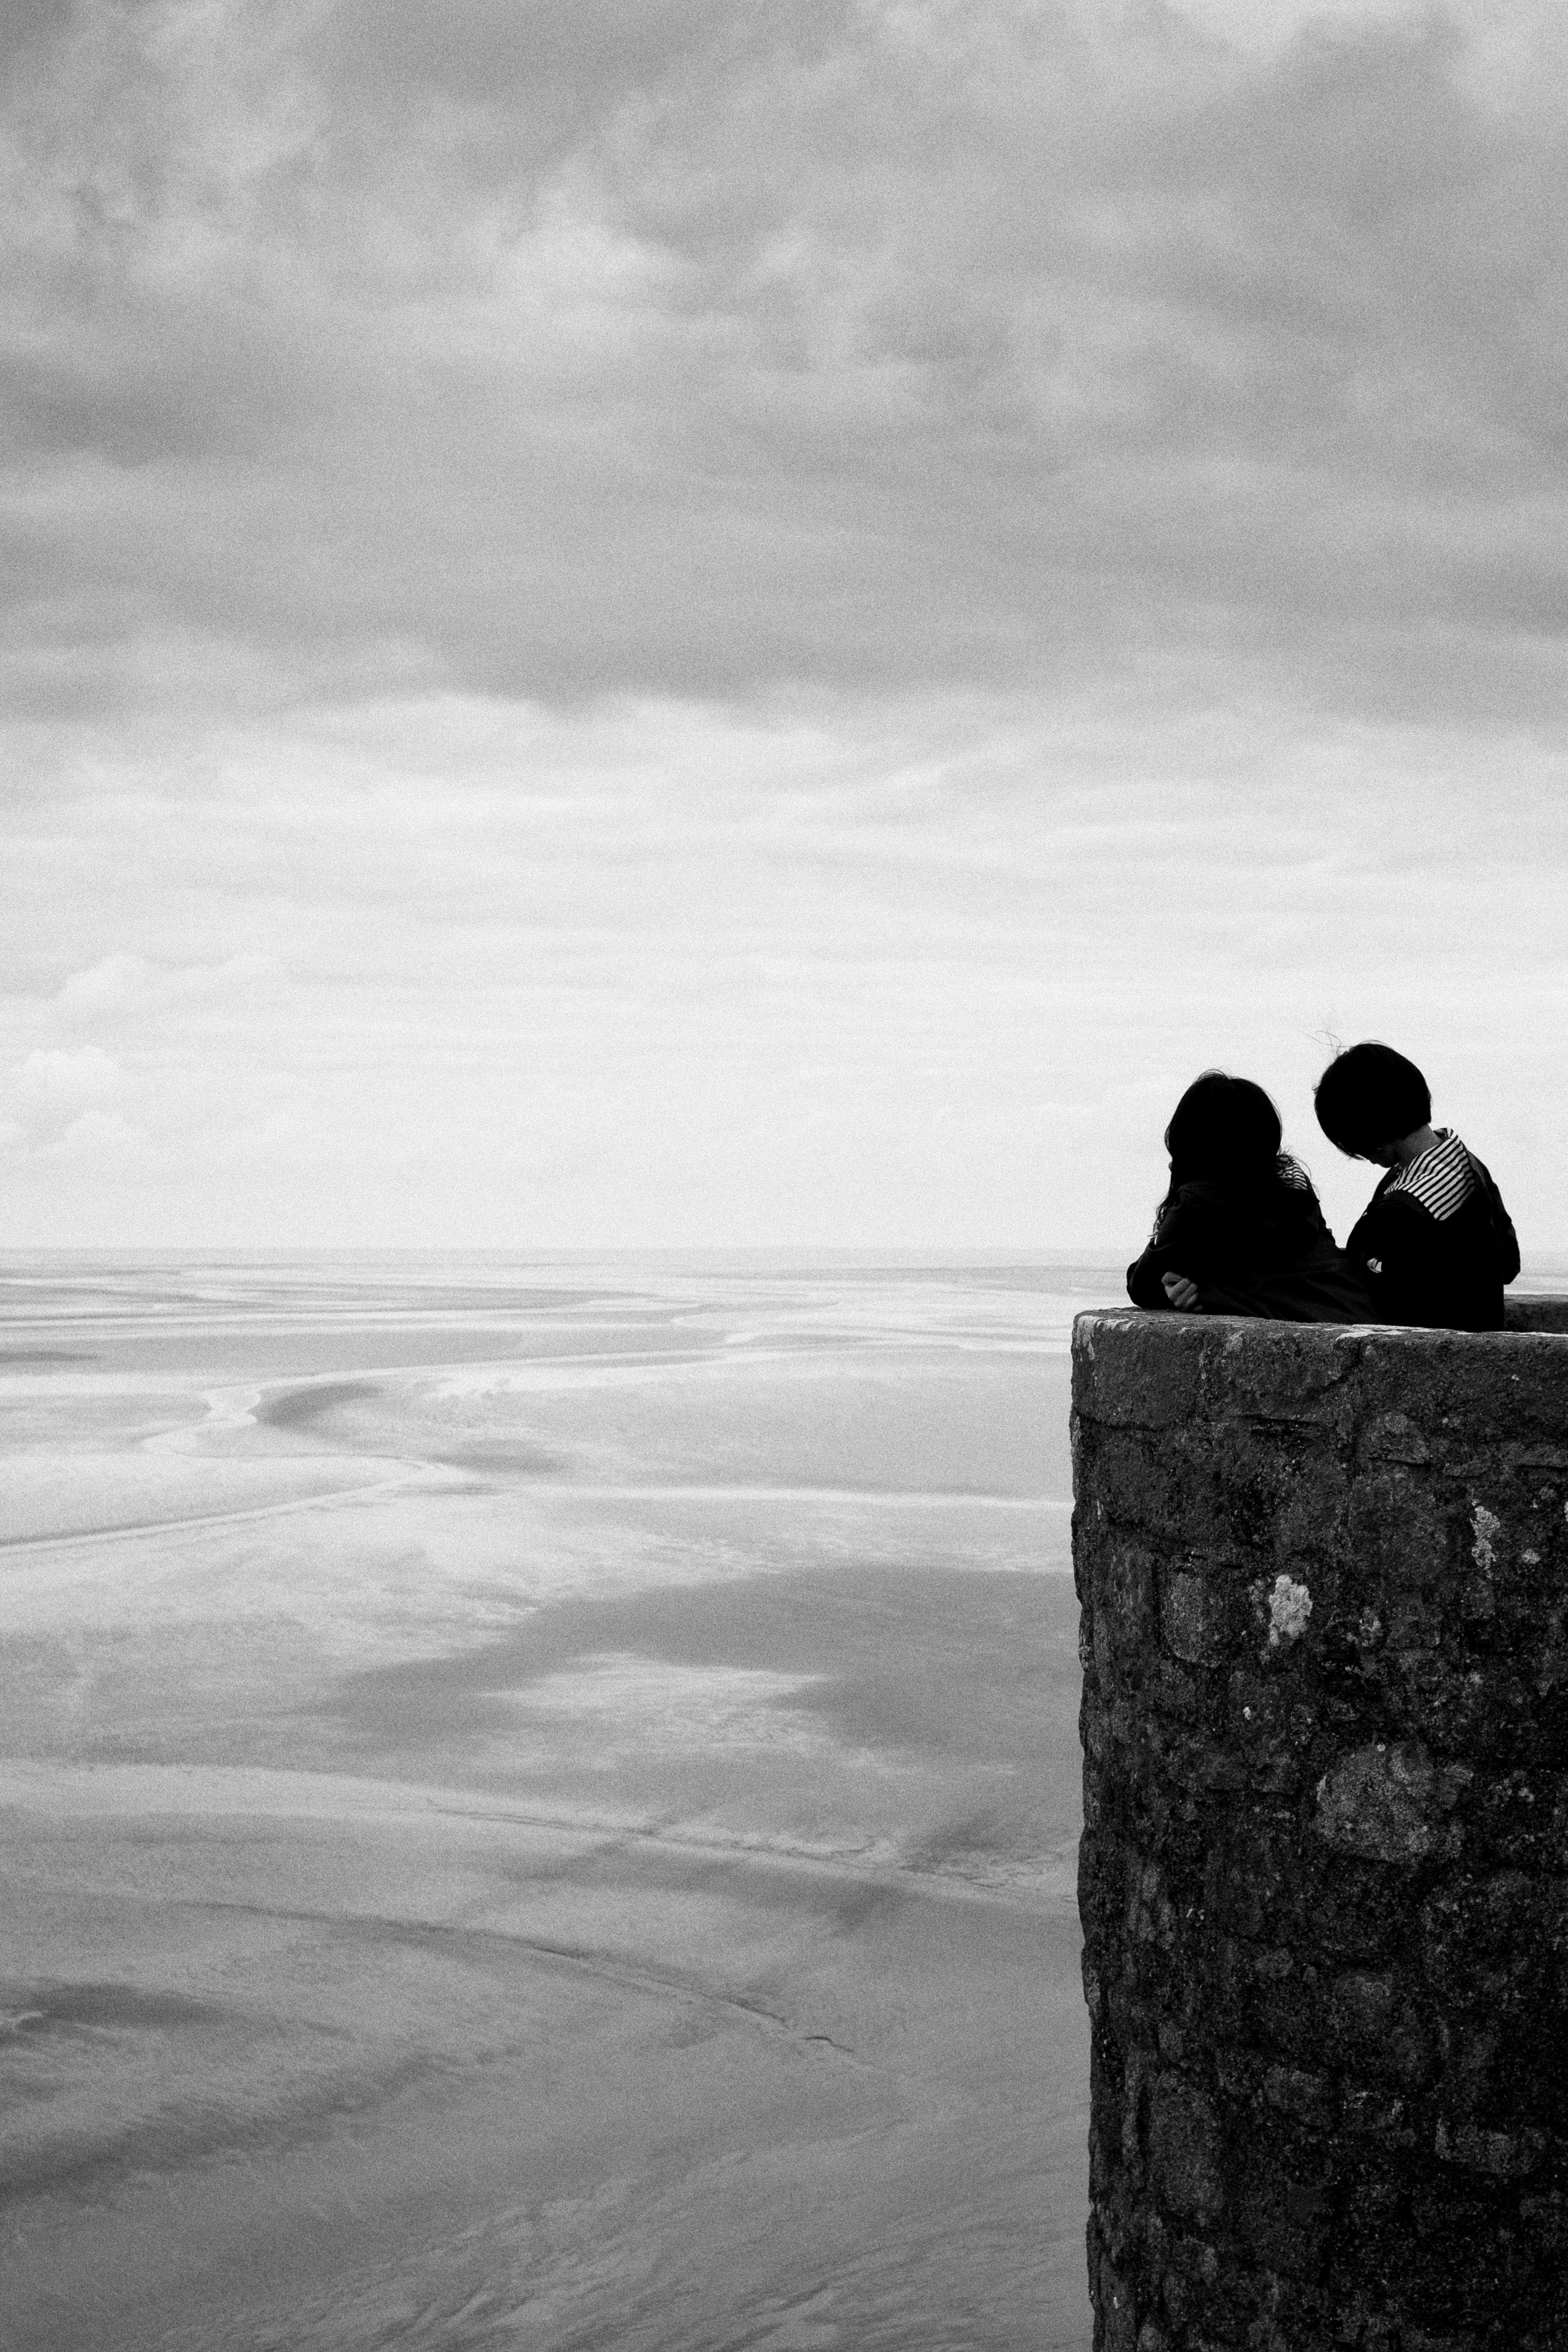 two people look out over a high parapet